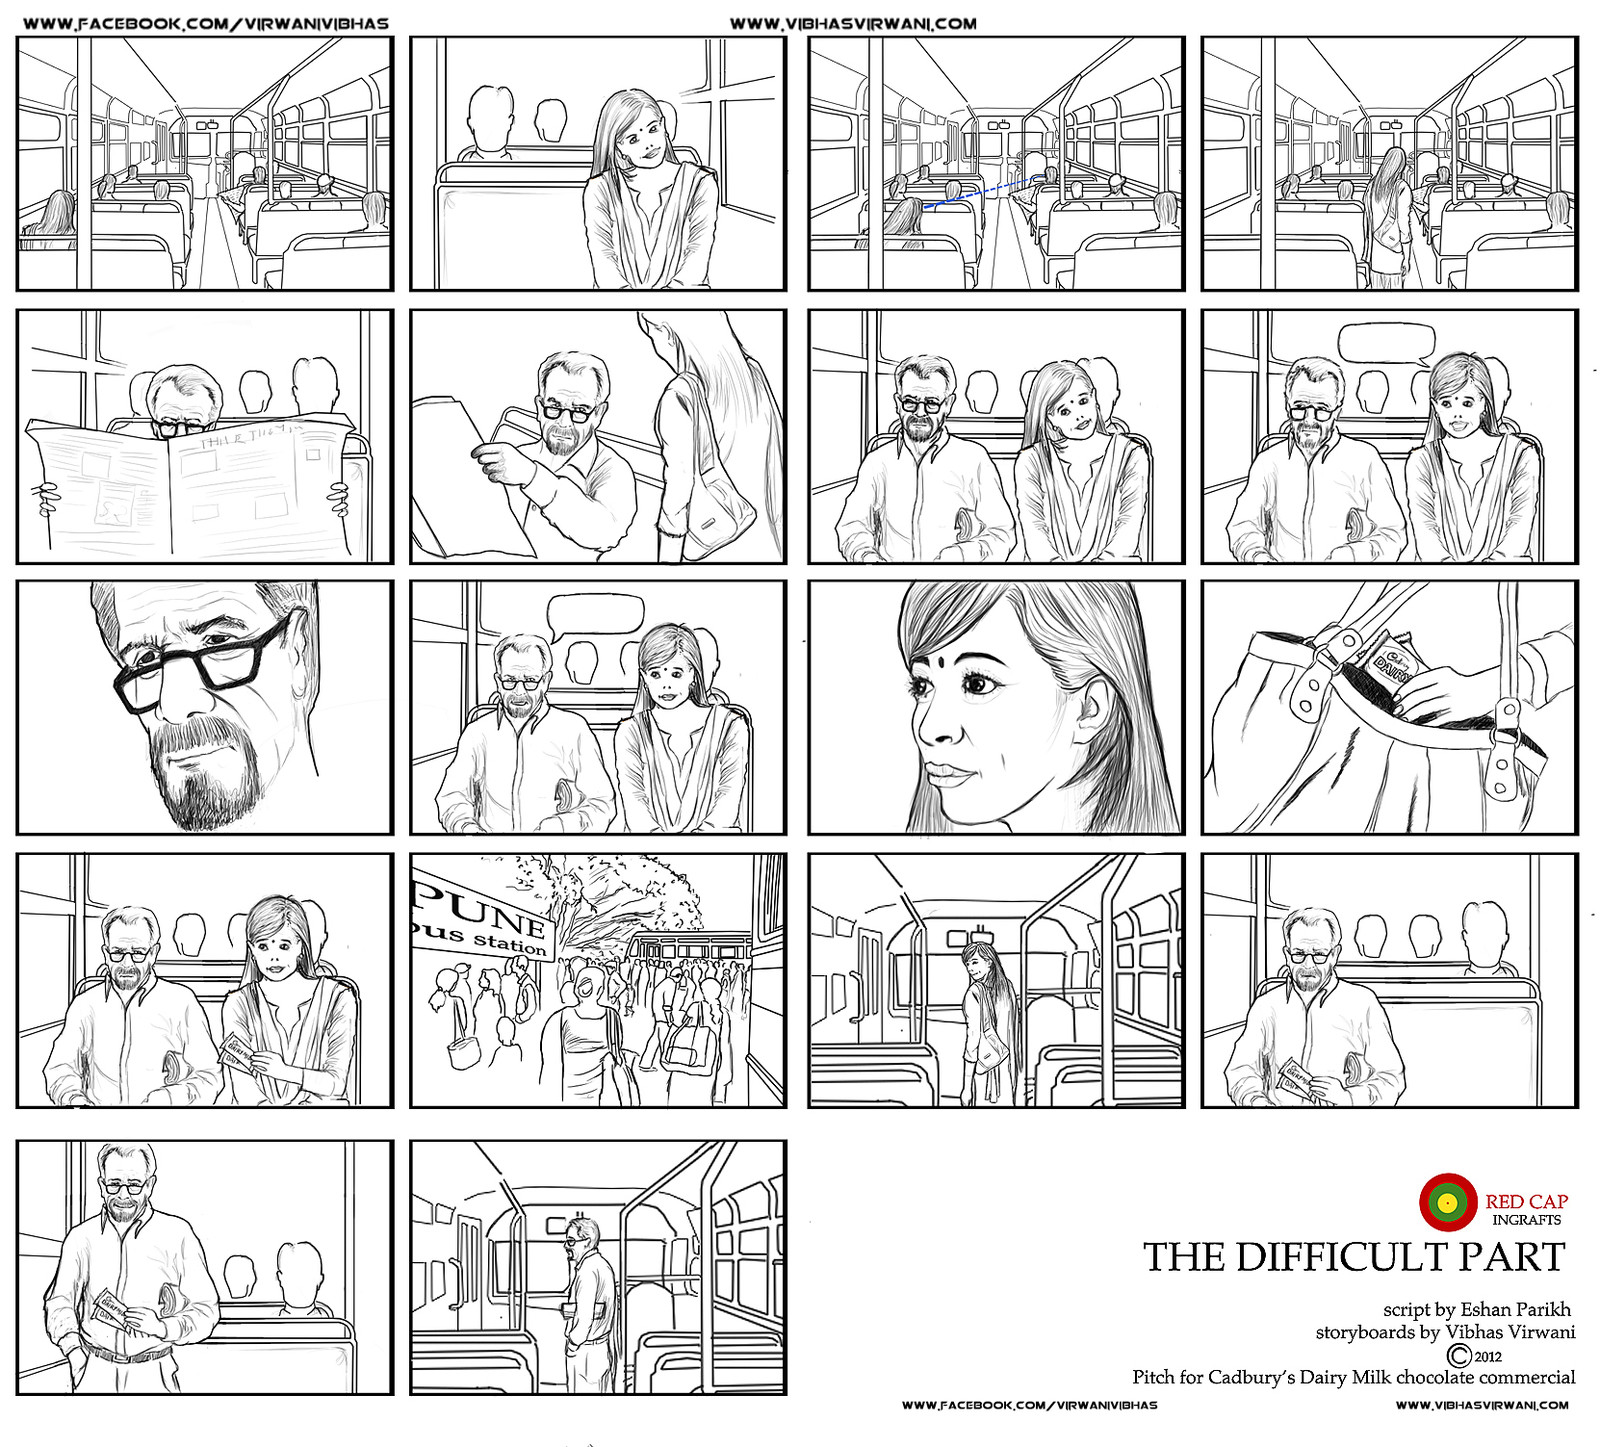 The Difficult part storyboard